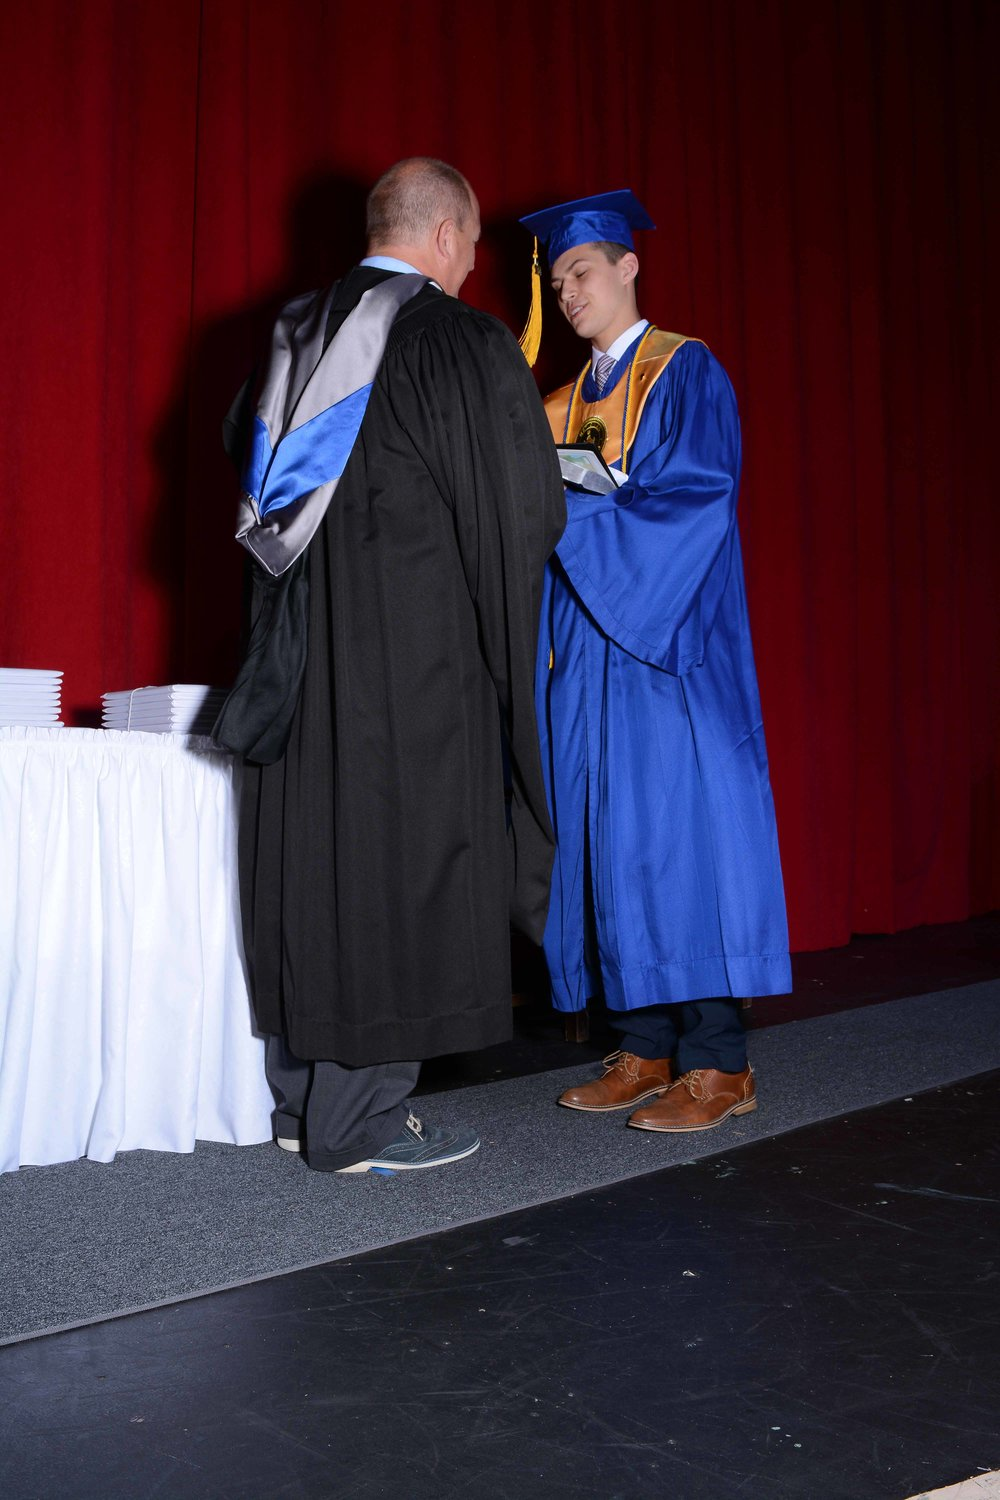 May14 Commencement143.jpg